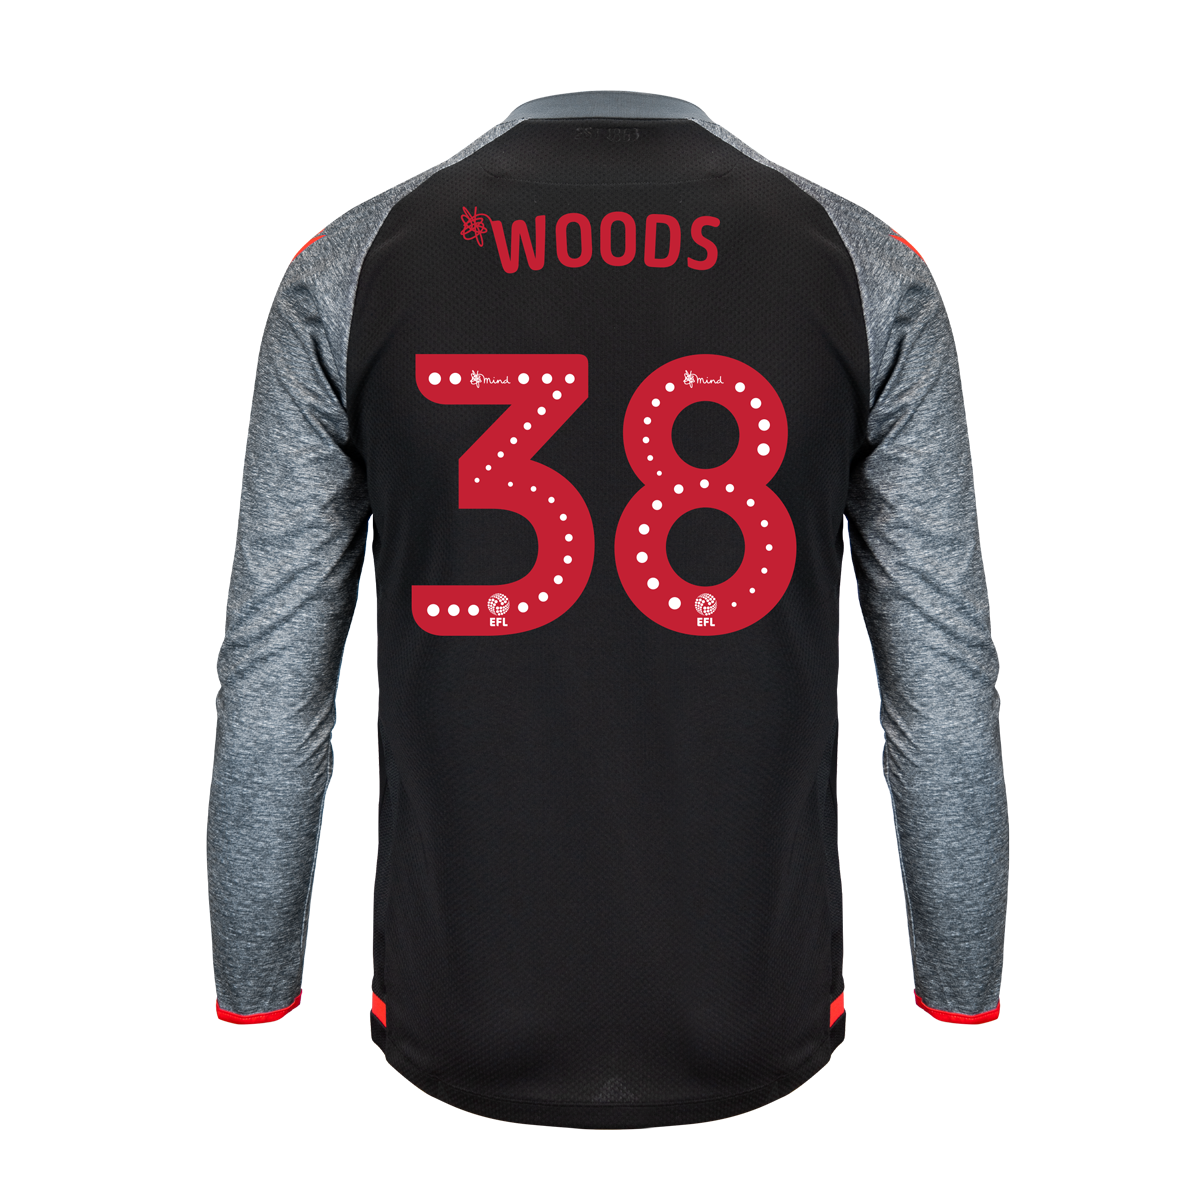 2019/20 Junior Away LS Shirt - Woods